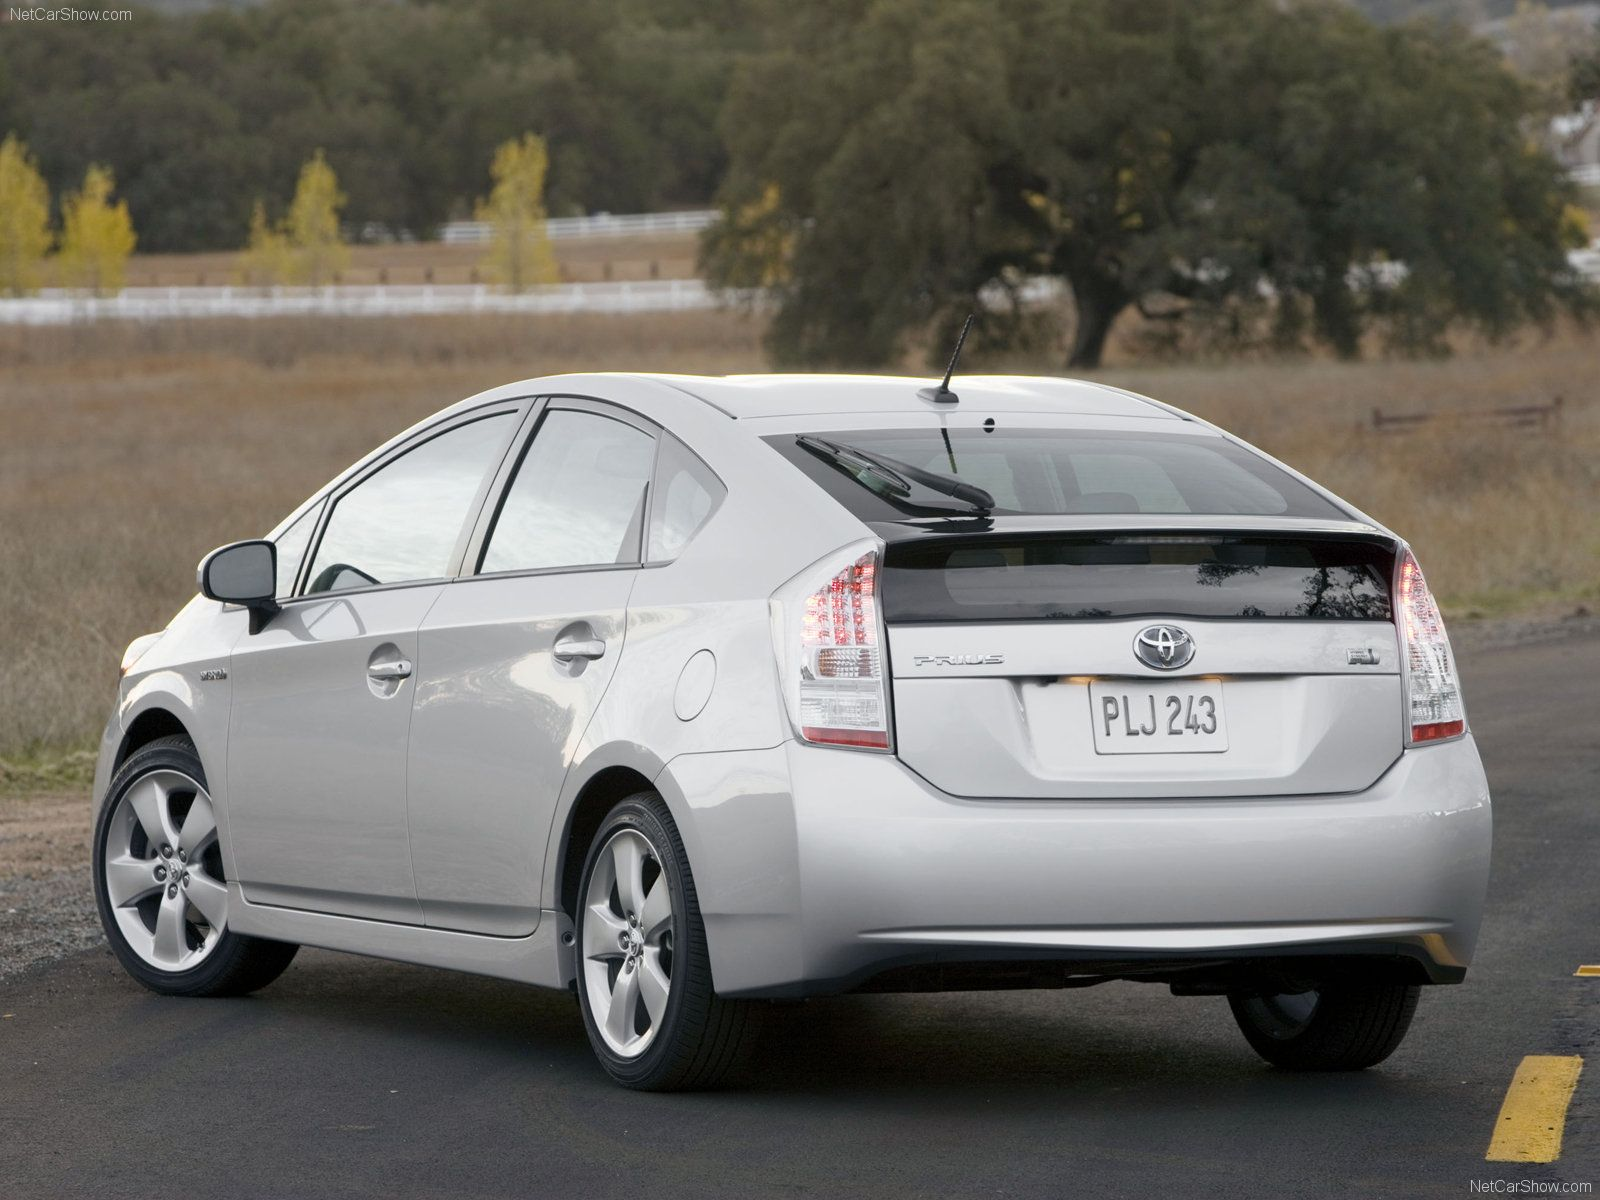 2009 Toyota Prius Second Generation Hybrid From 2003 To